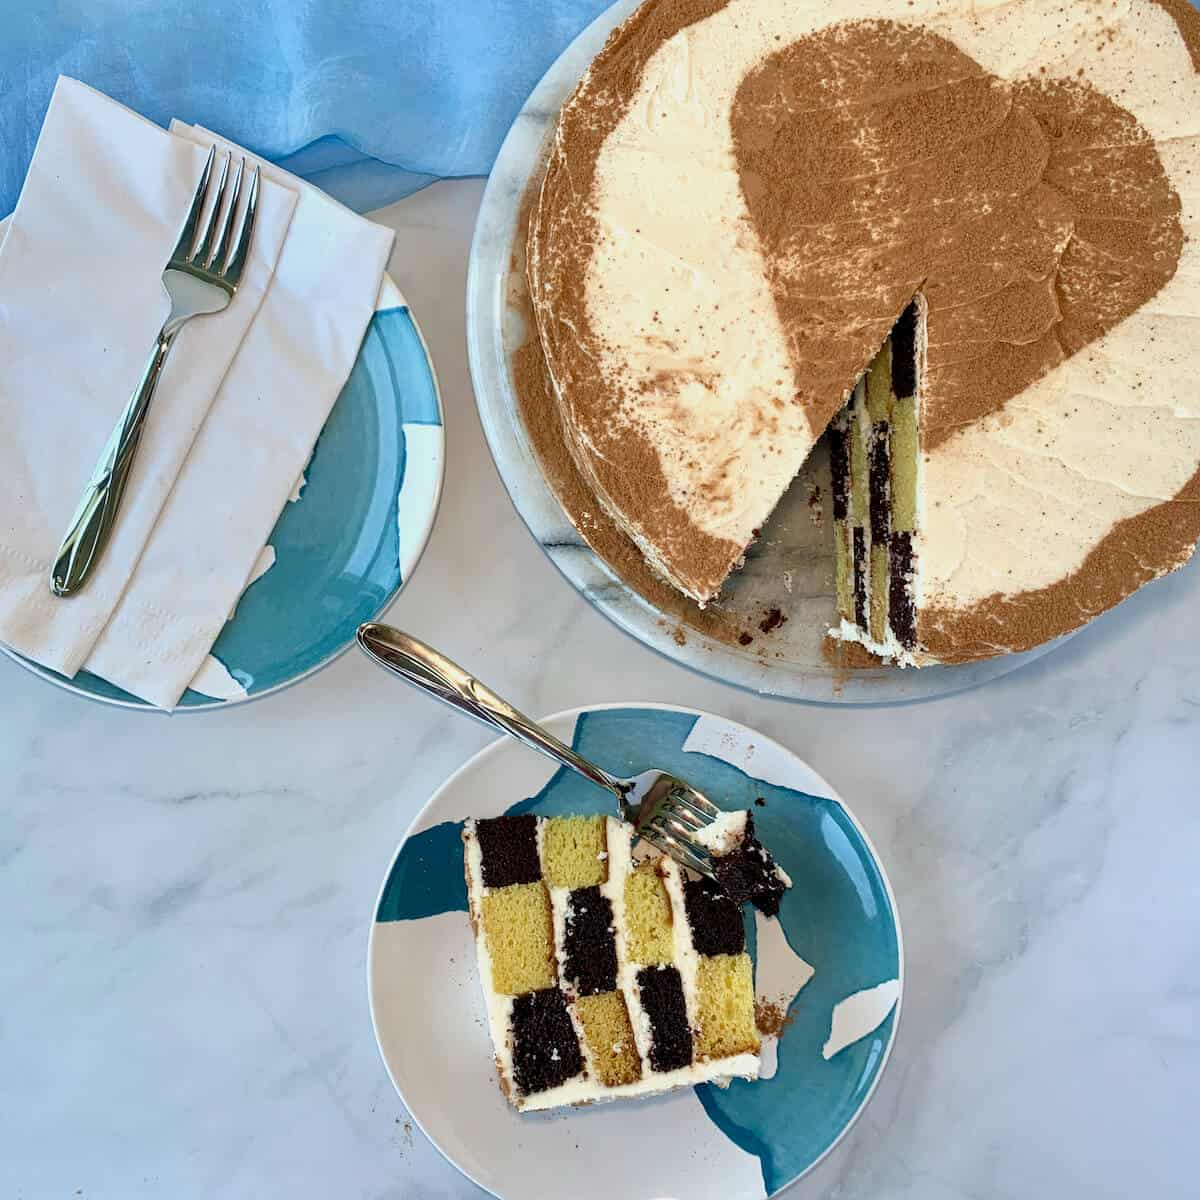 checkerboard cake slice on a blue & white plate with cake on plate and fork in background